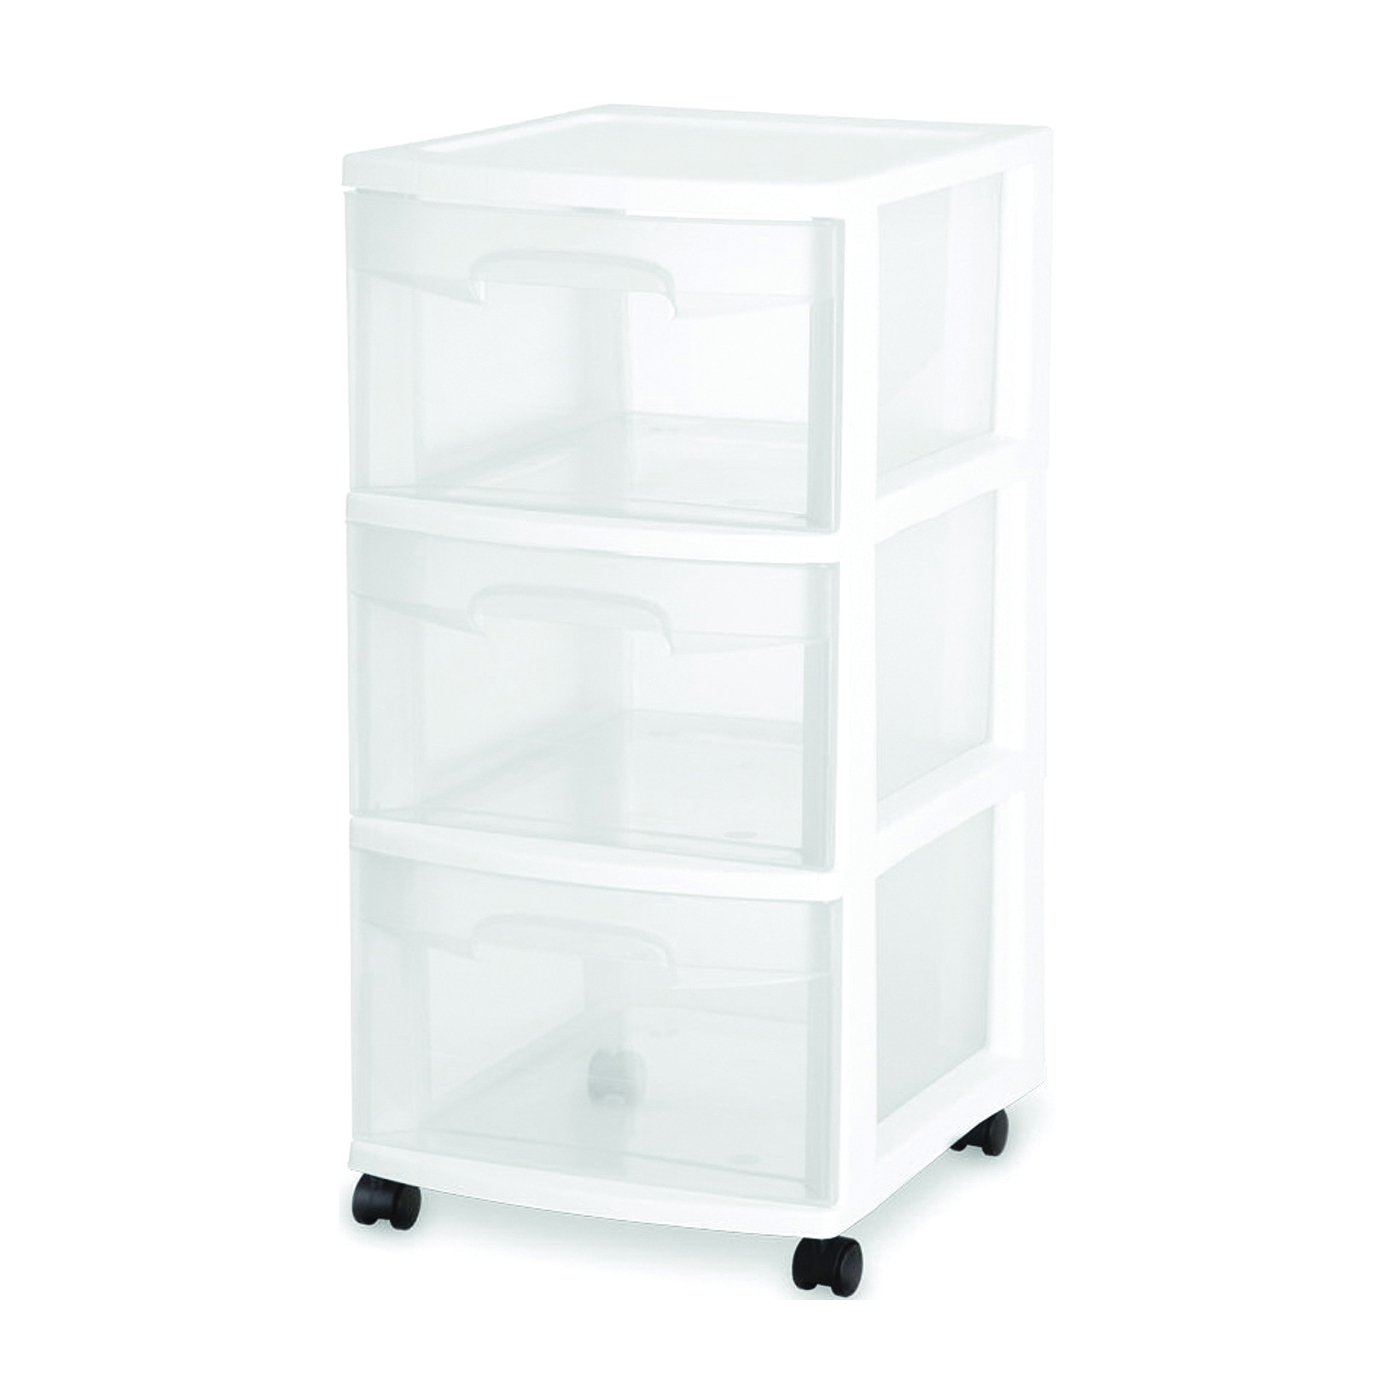 Picture of Sterilite 28308002 Drawer Cart, 3-Drawer, Plastic Drawer, Clear Drawer, 14-1/2 in OAL, 12-5/8 in OAW